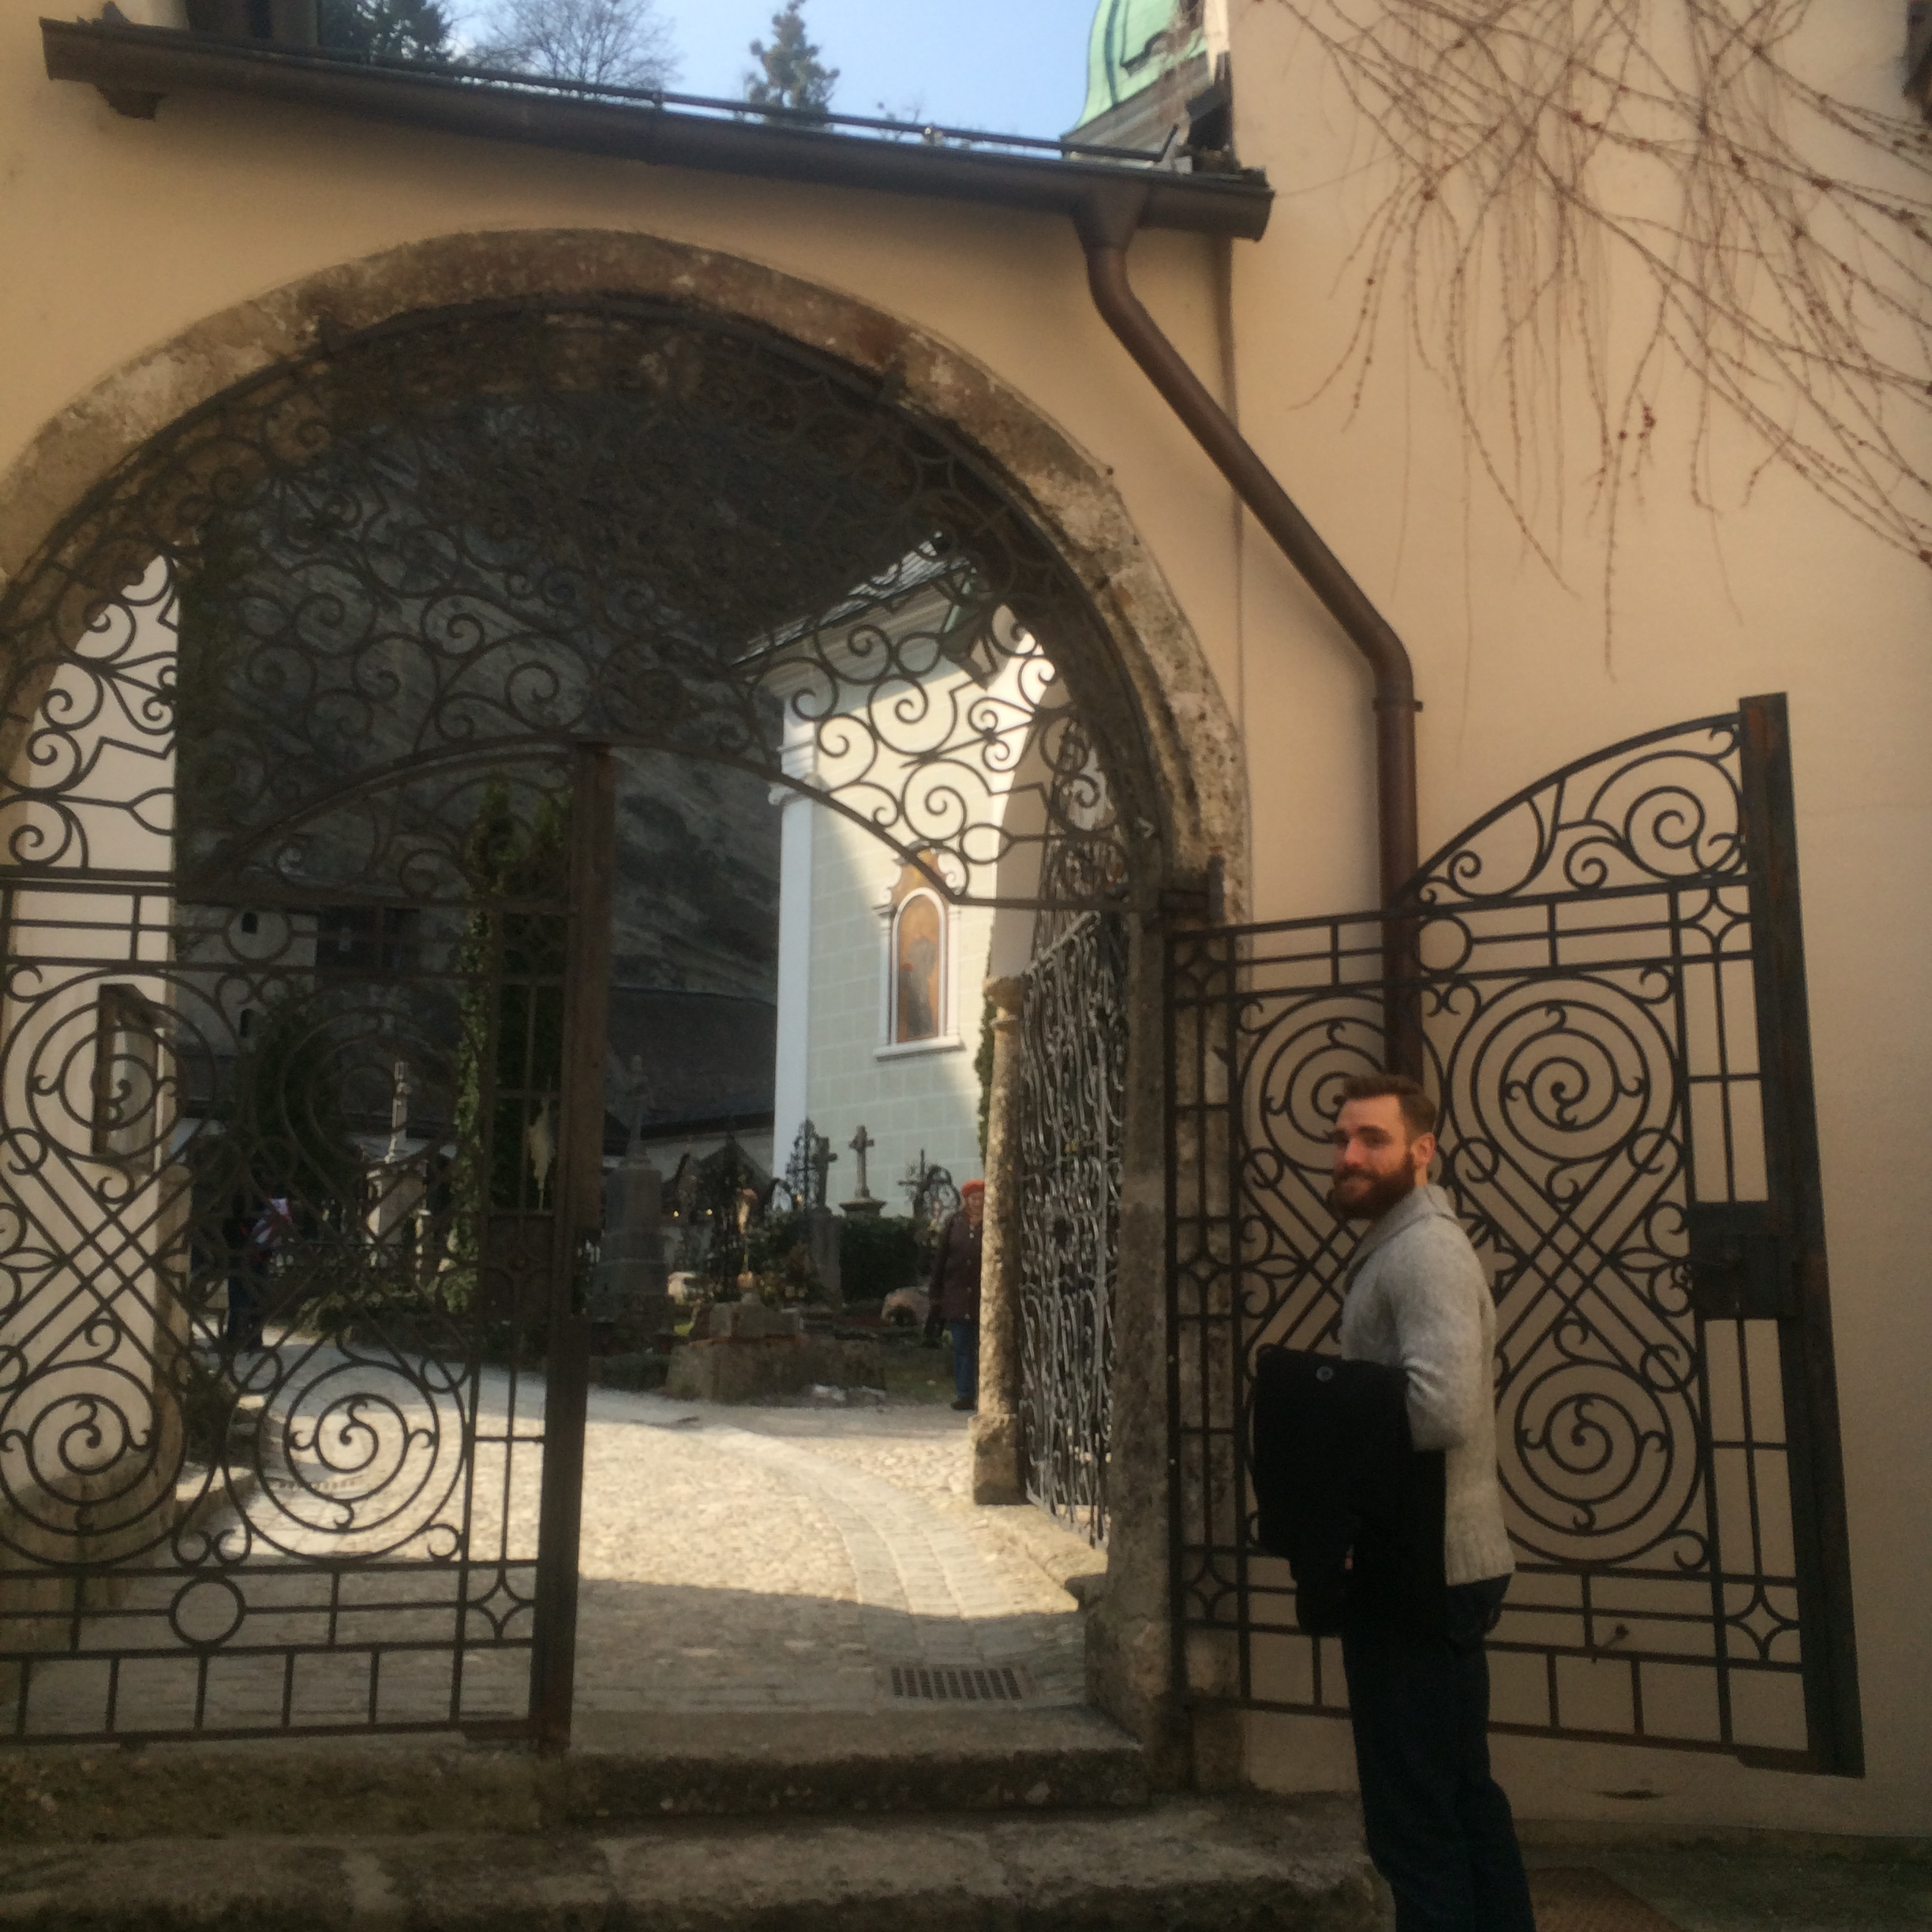 the entrance to Petersfriedhof